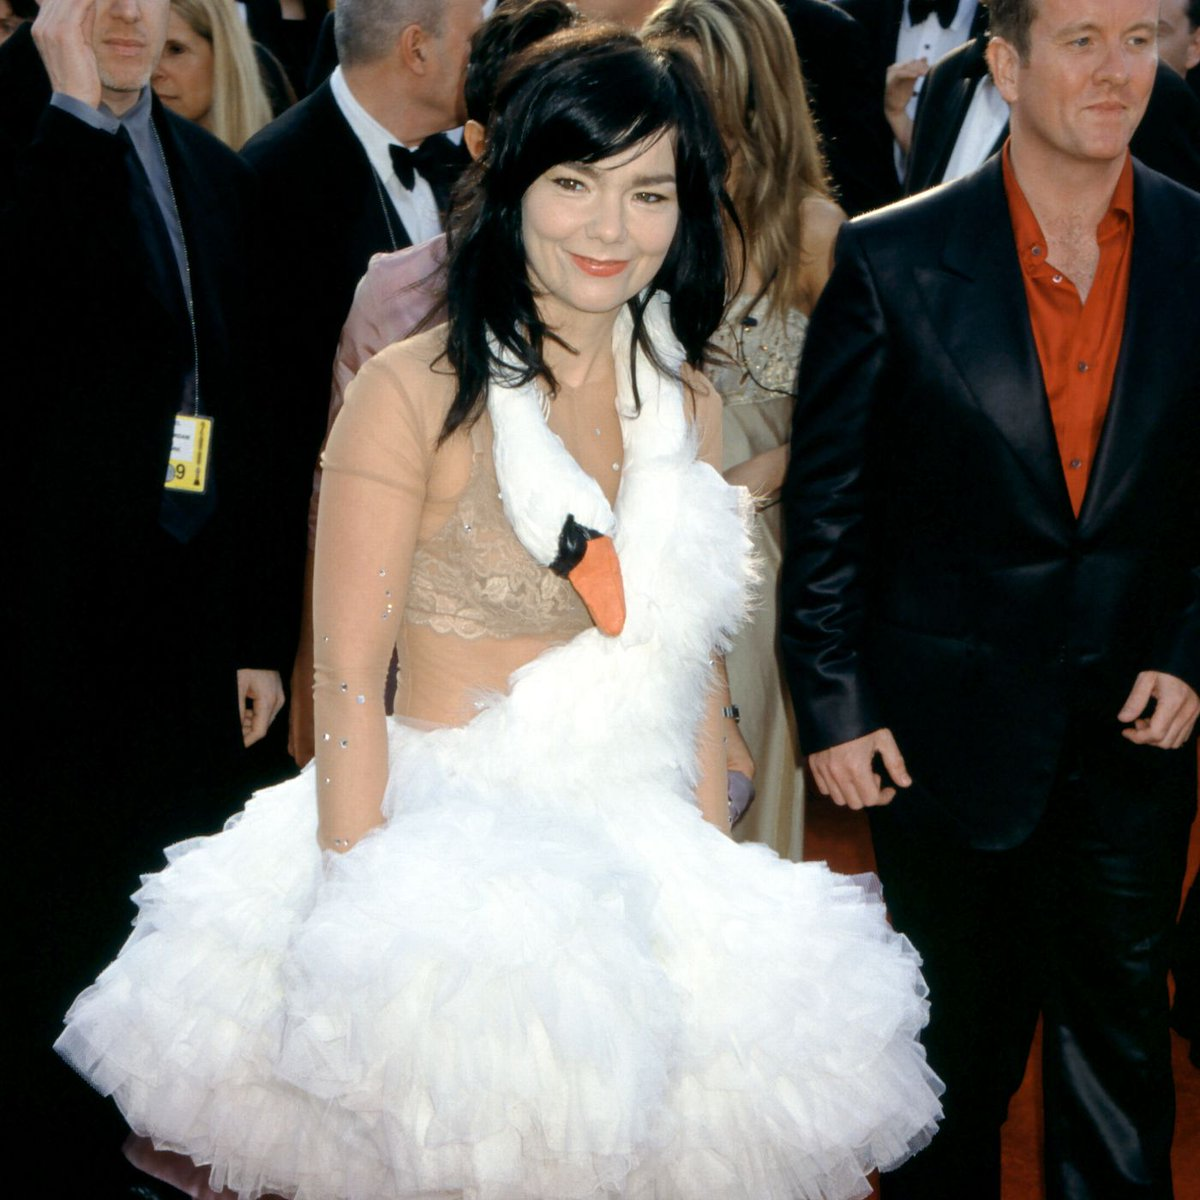 after exhaustingly combing through *90 years* of Oscar fashion, i've somehow narrowed it down to the four greatest red carpet looks of all time: <br>http://pic.twitter.com/xmd7jyzvvX